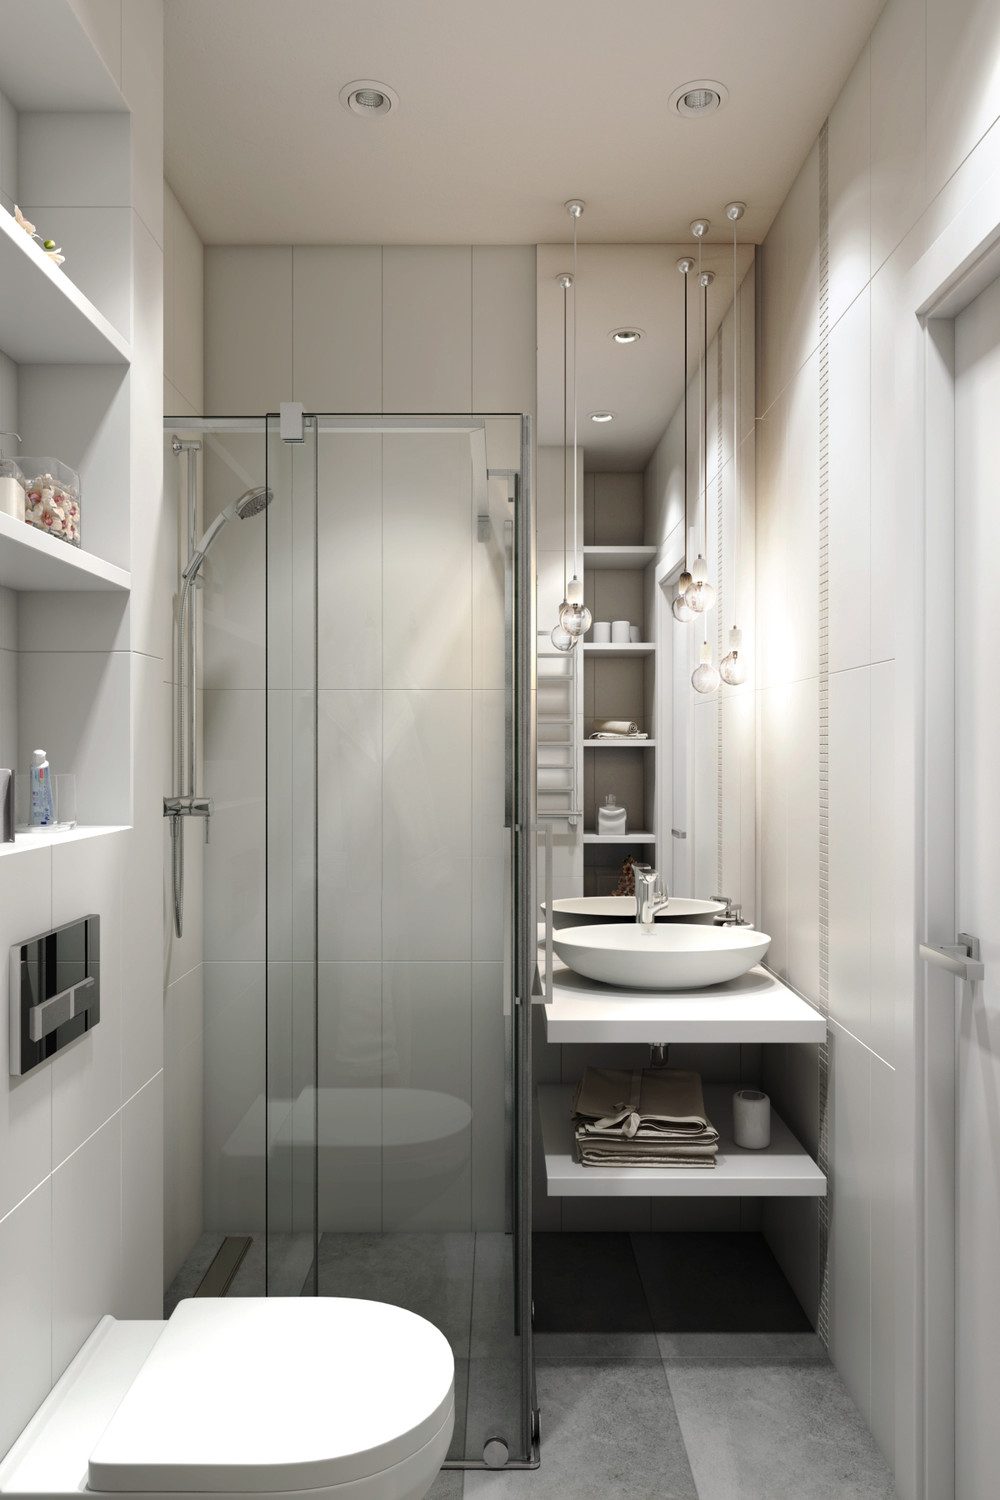 4 small apartments showcase the flexibility of compact design for Compact bathroom designs